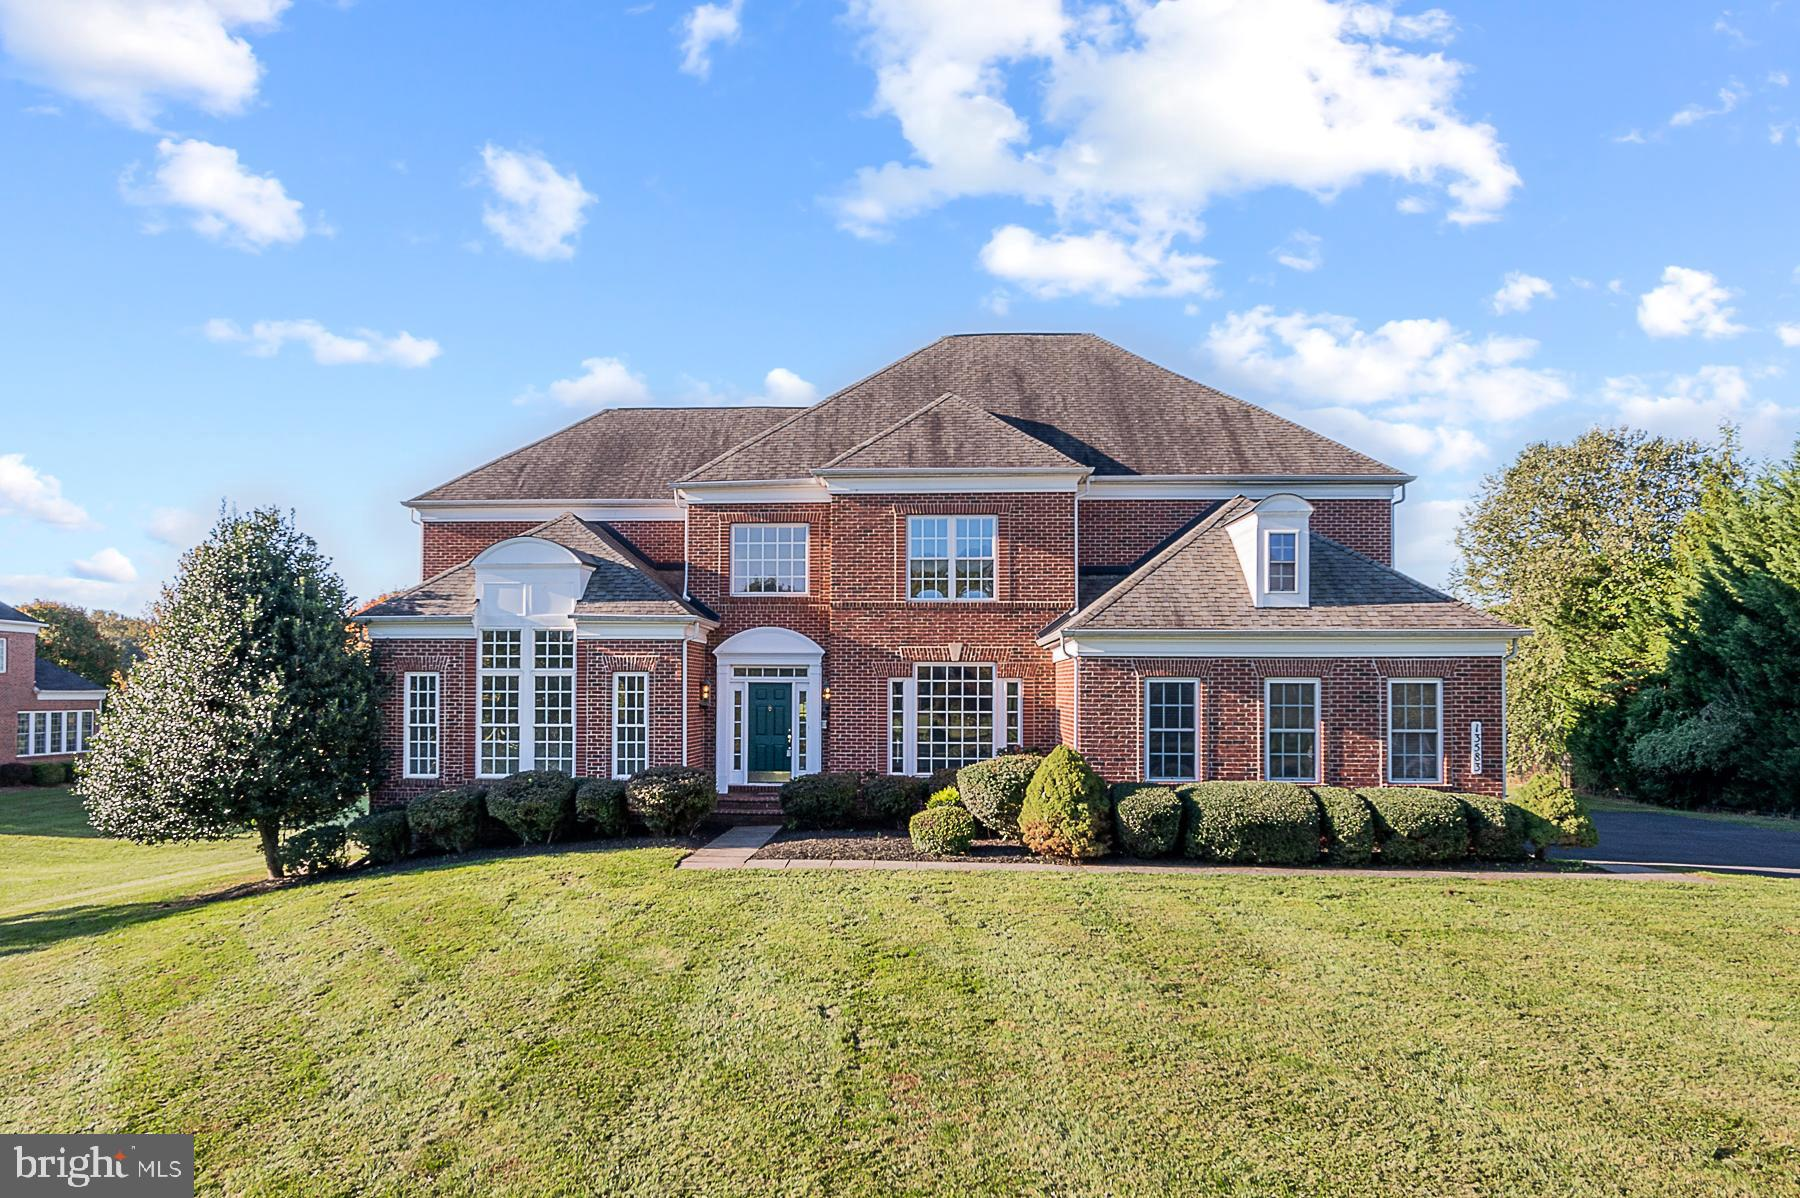 Welcome to this beautiful brick front colonial in Howard County with over 6,800 finished square feet